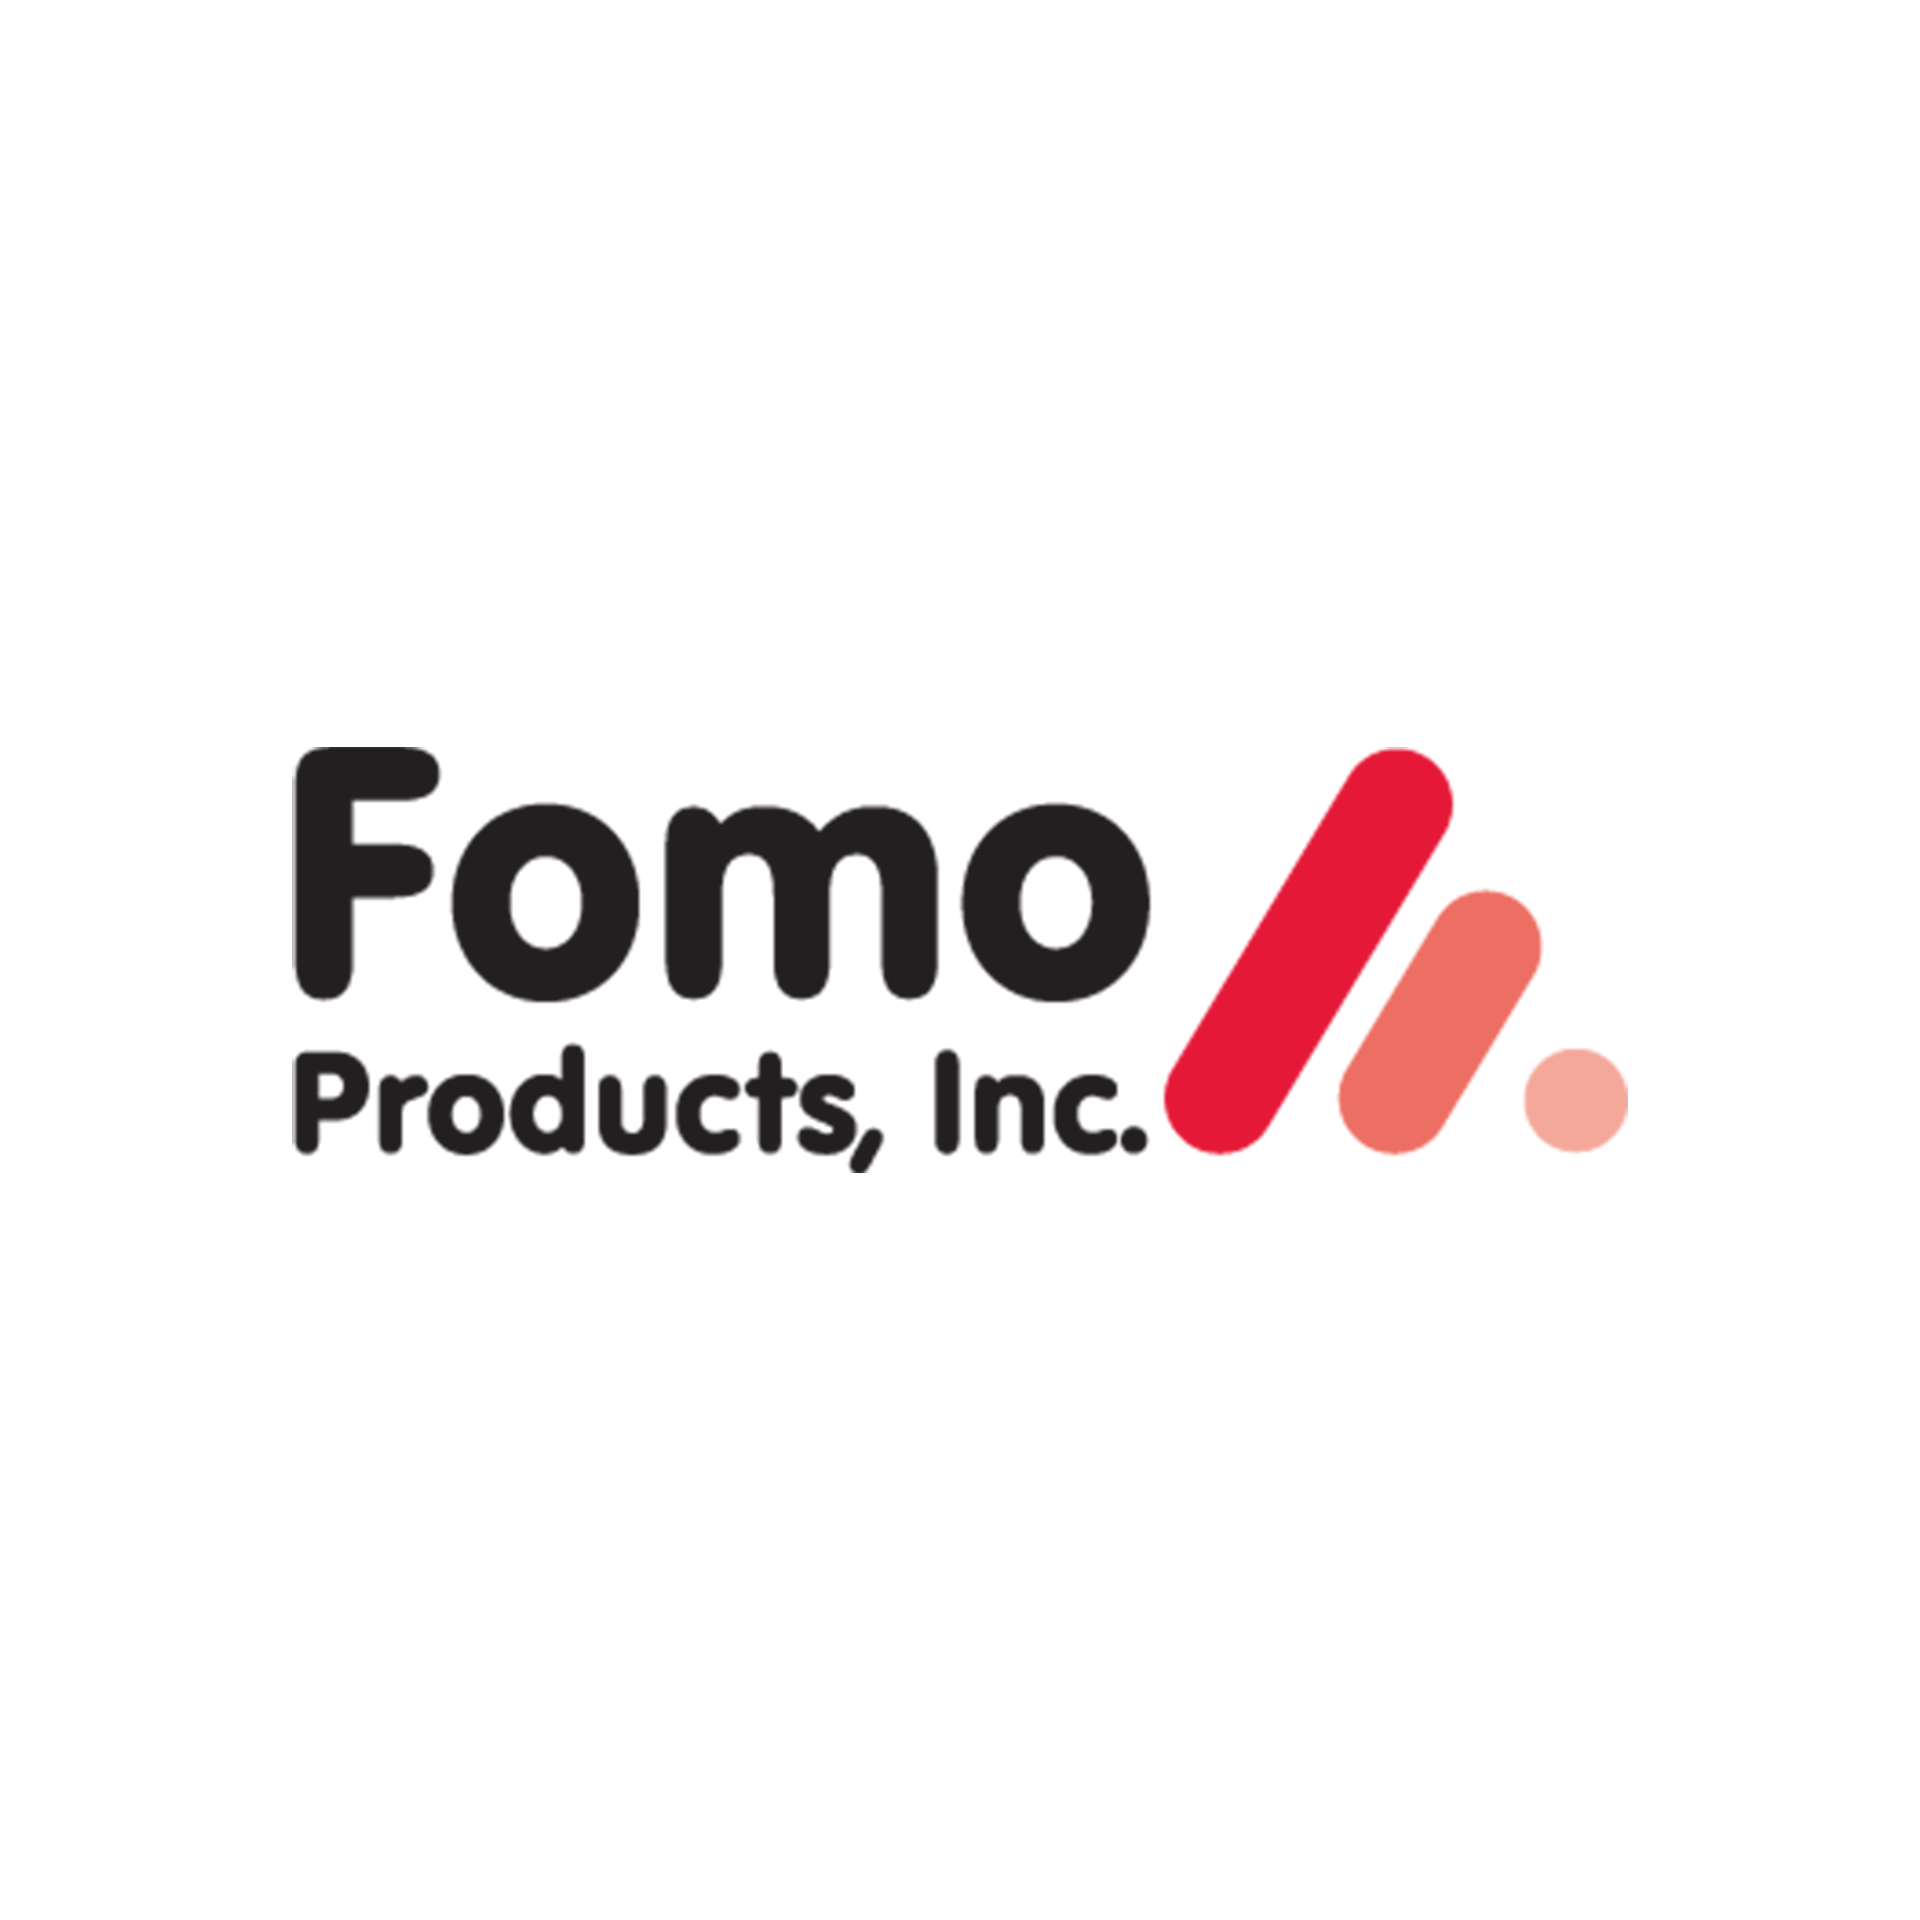 FOMO Products